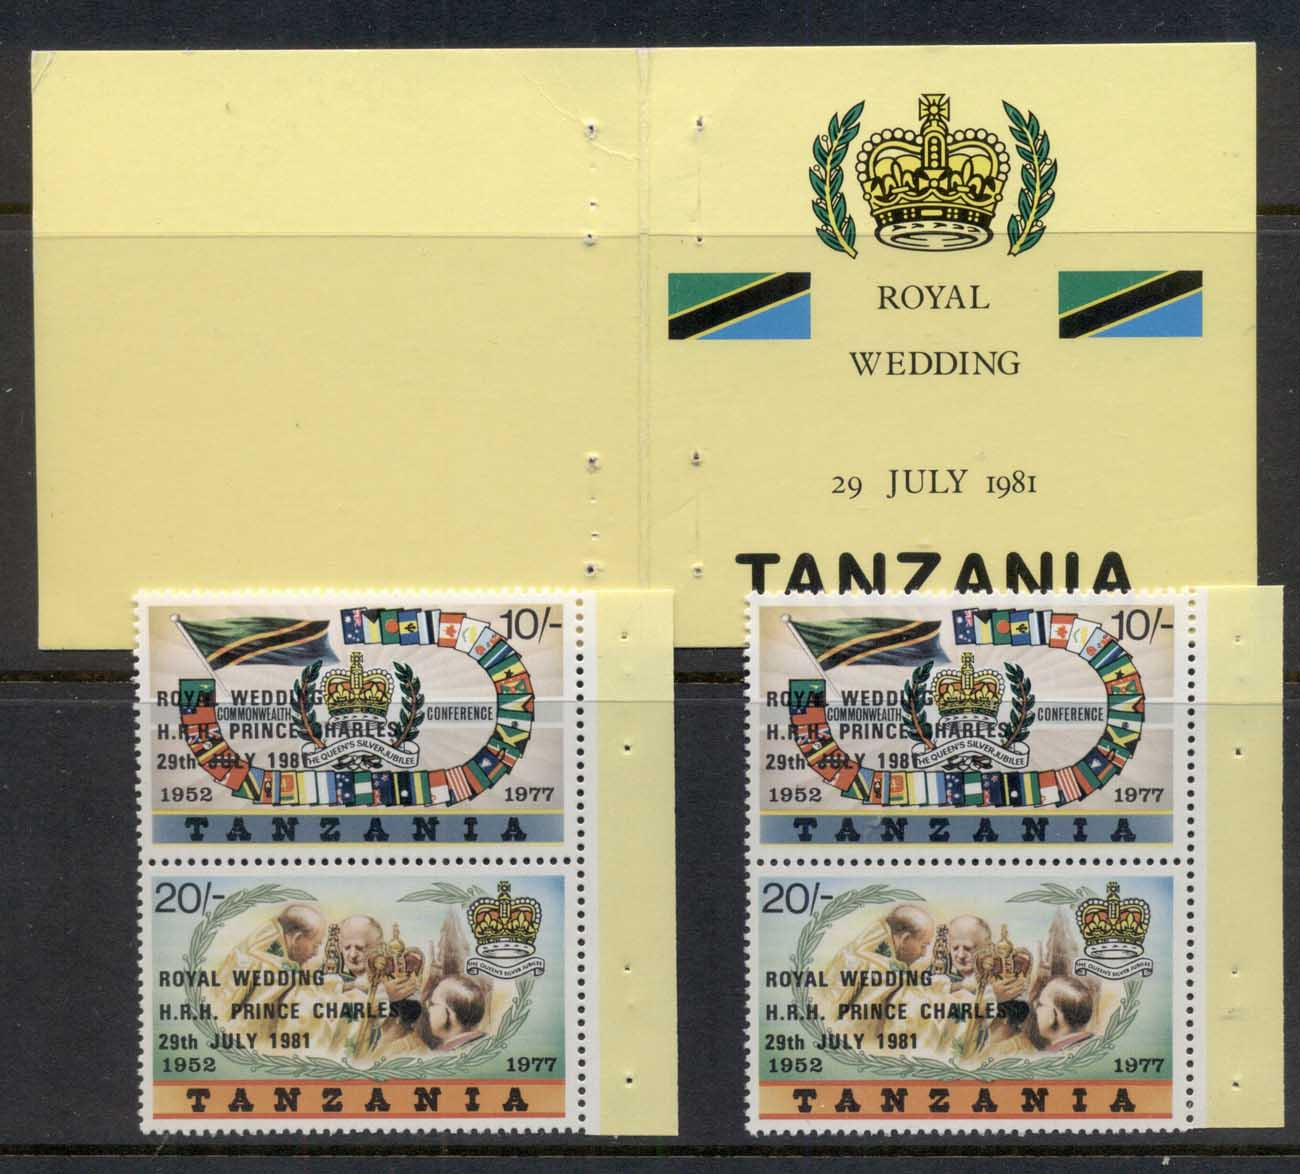 Tanzania 1981 Royal Wedding Charles & Diana Opts exploded booklet MUH